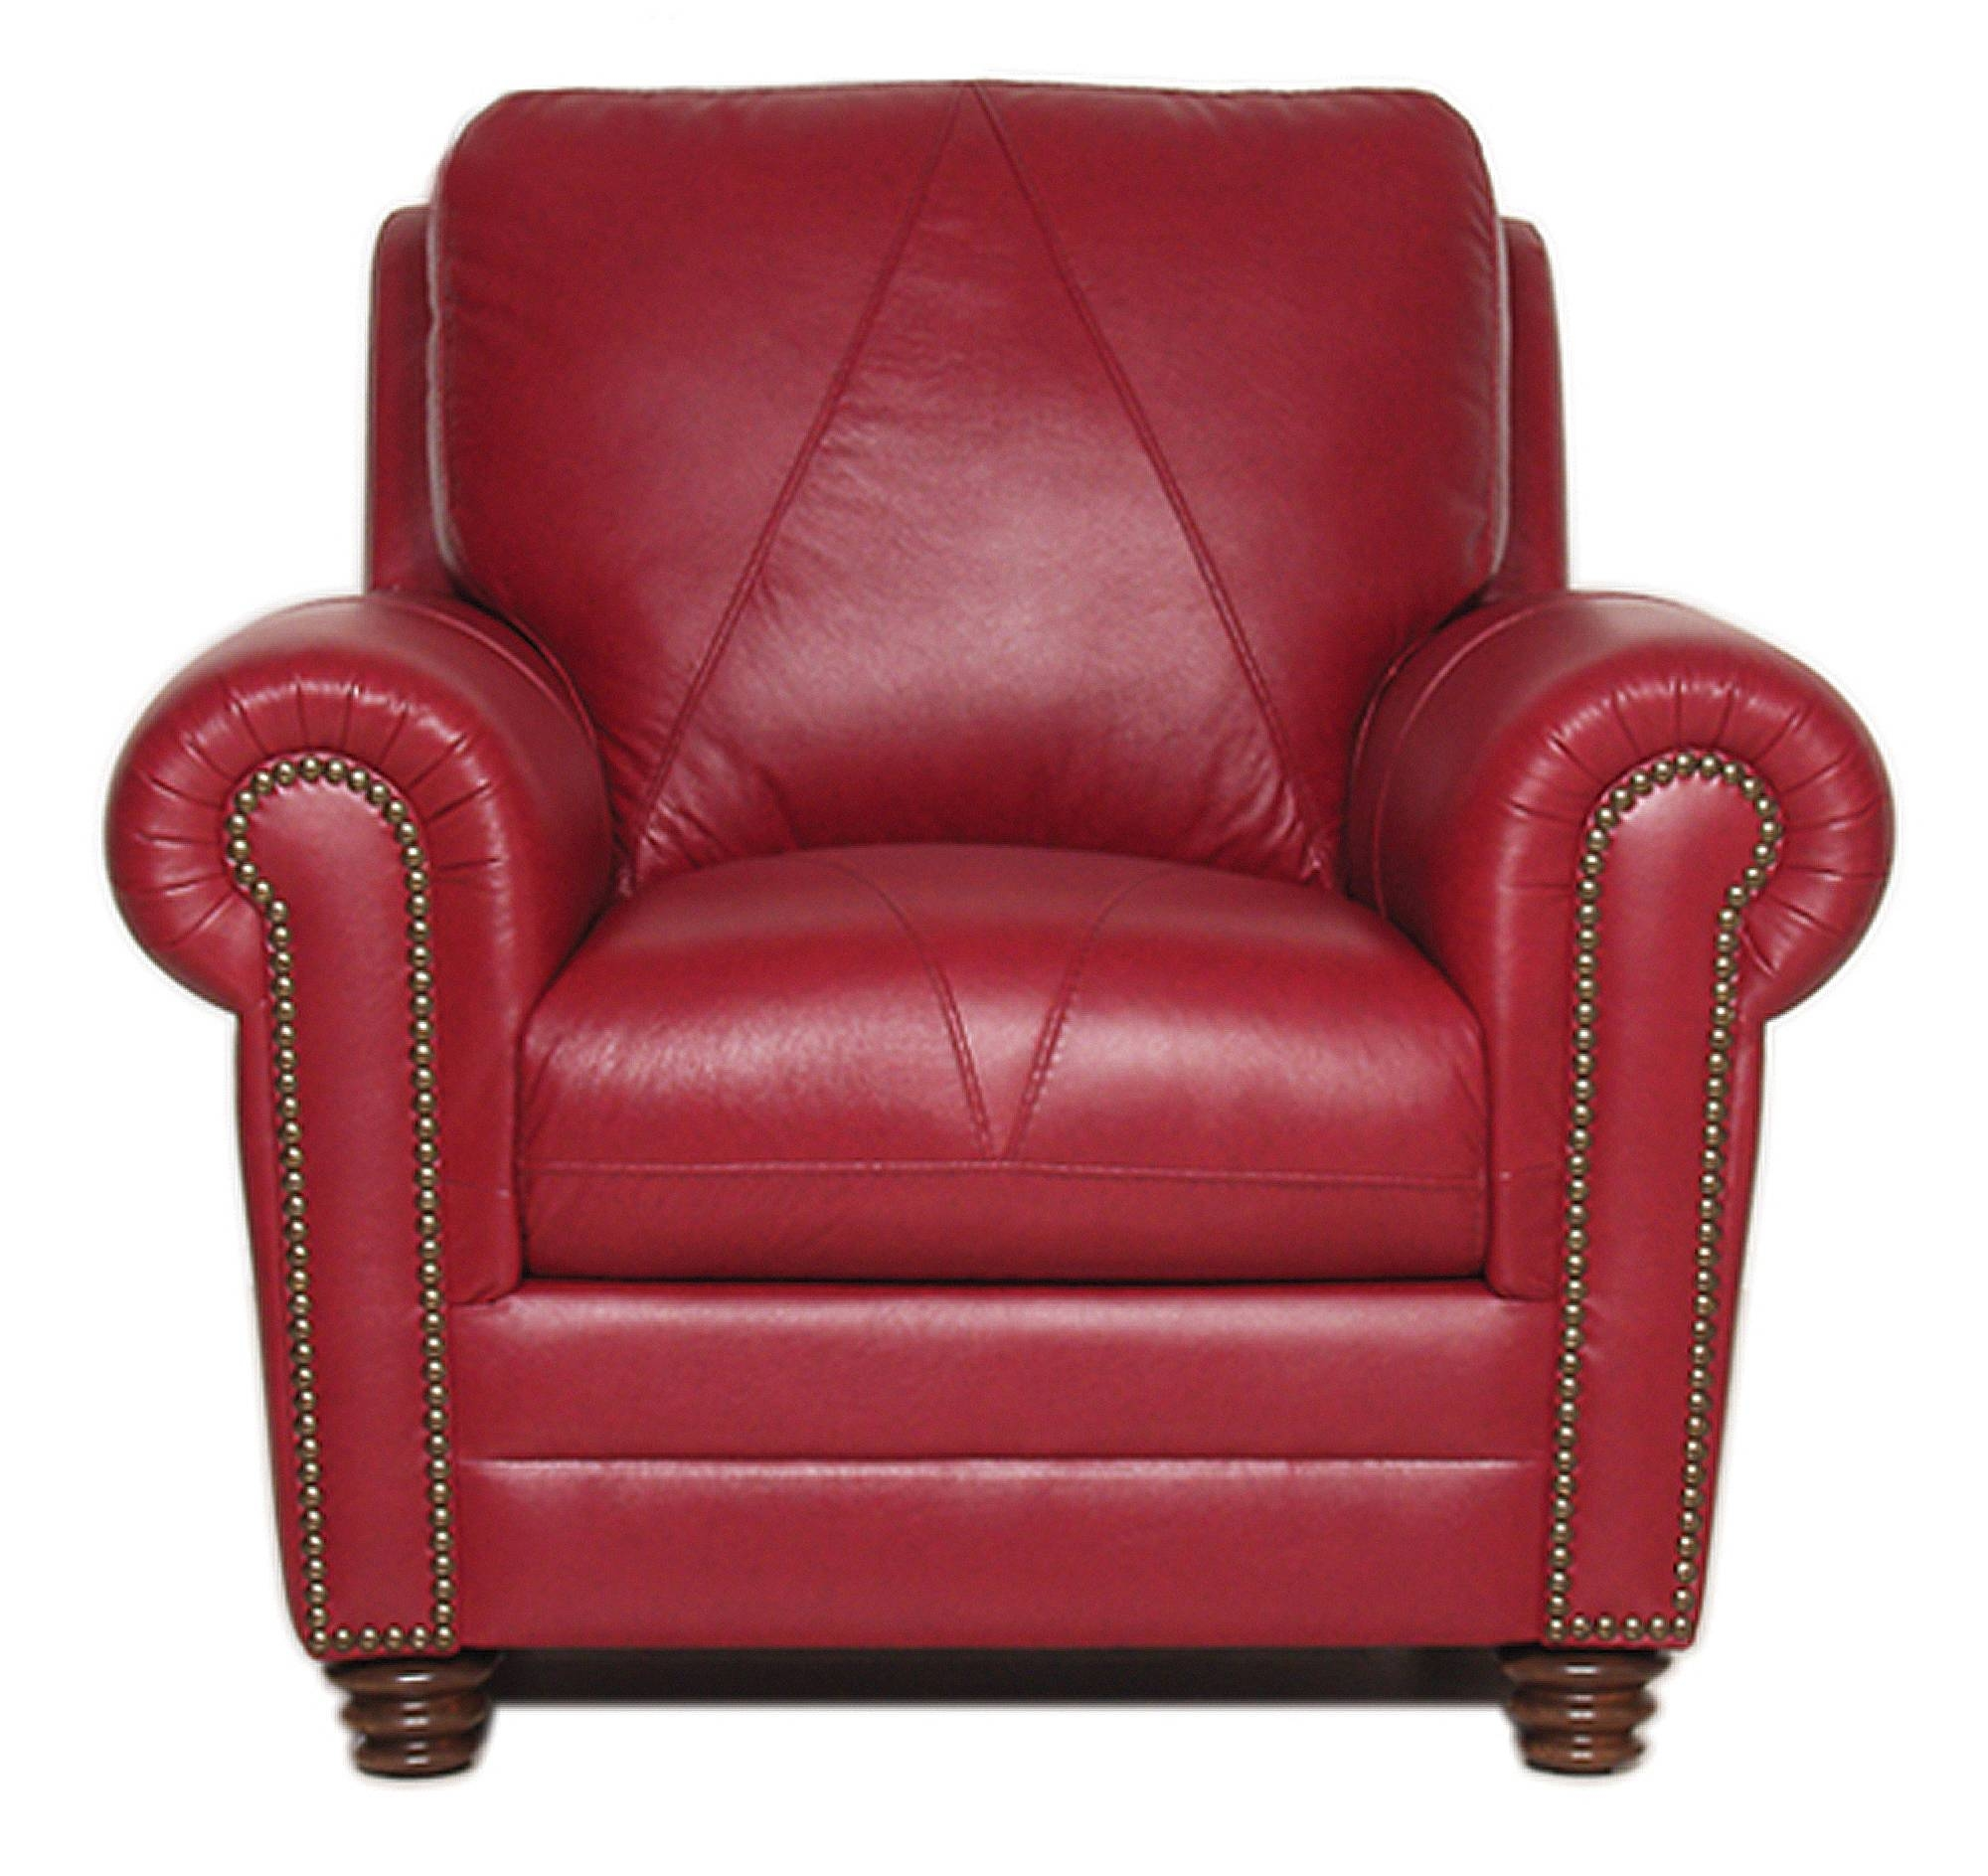 Weston Collection - Luke Leather Furniture intended for Red Sofas And Chairs (Image 30 of 30)